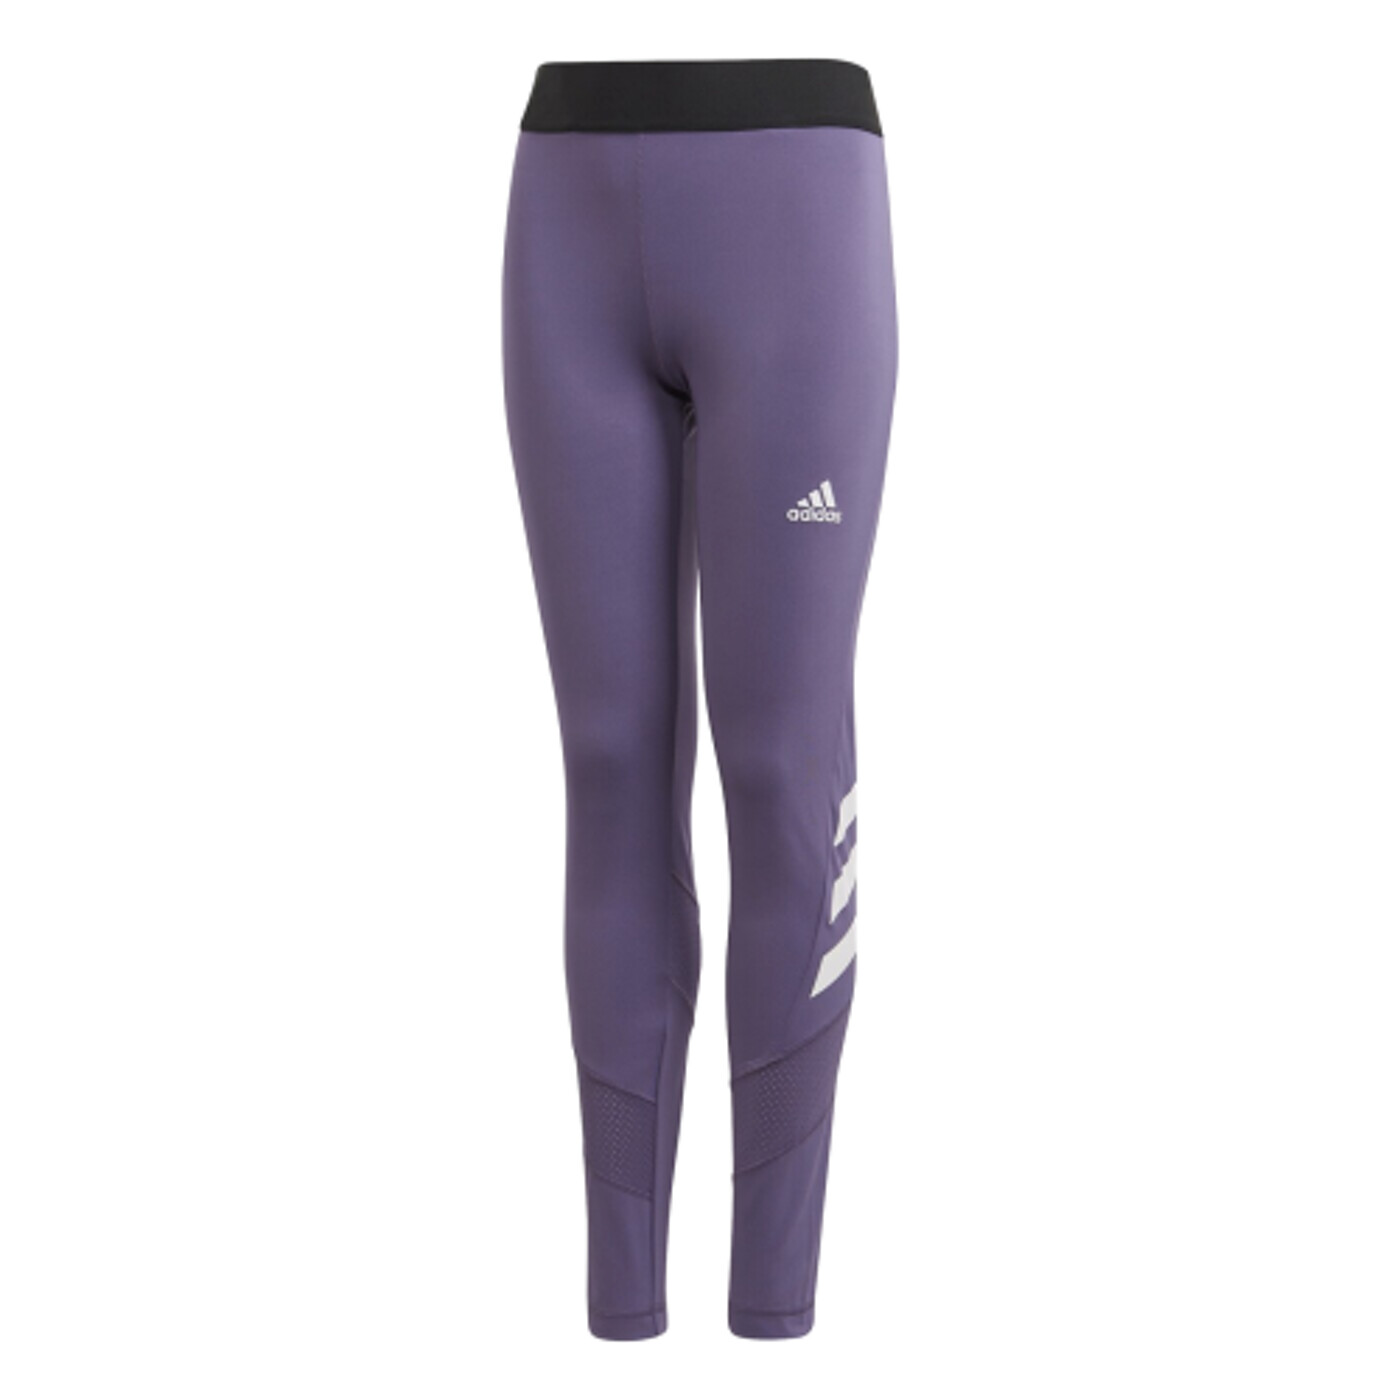 ADIDAS THE FUTURE TODAY TIGHT - Kinder